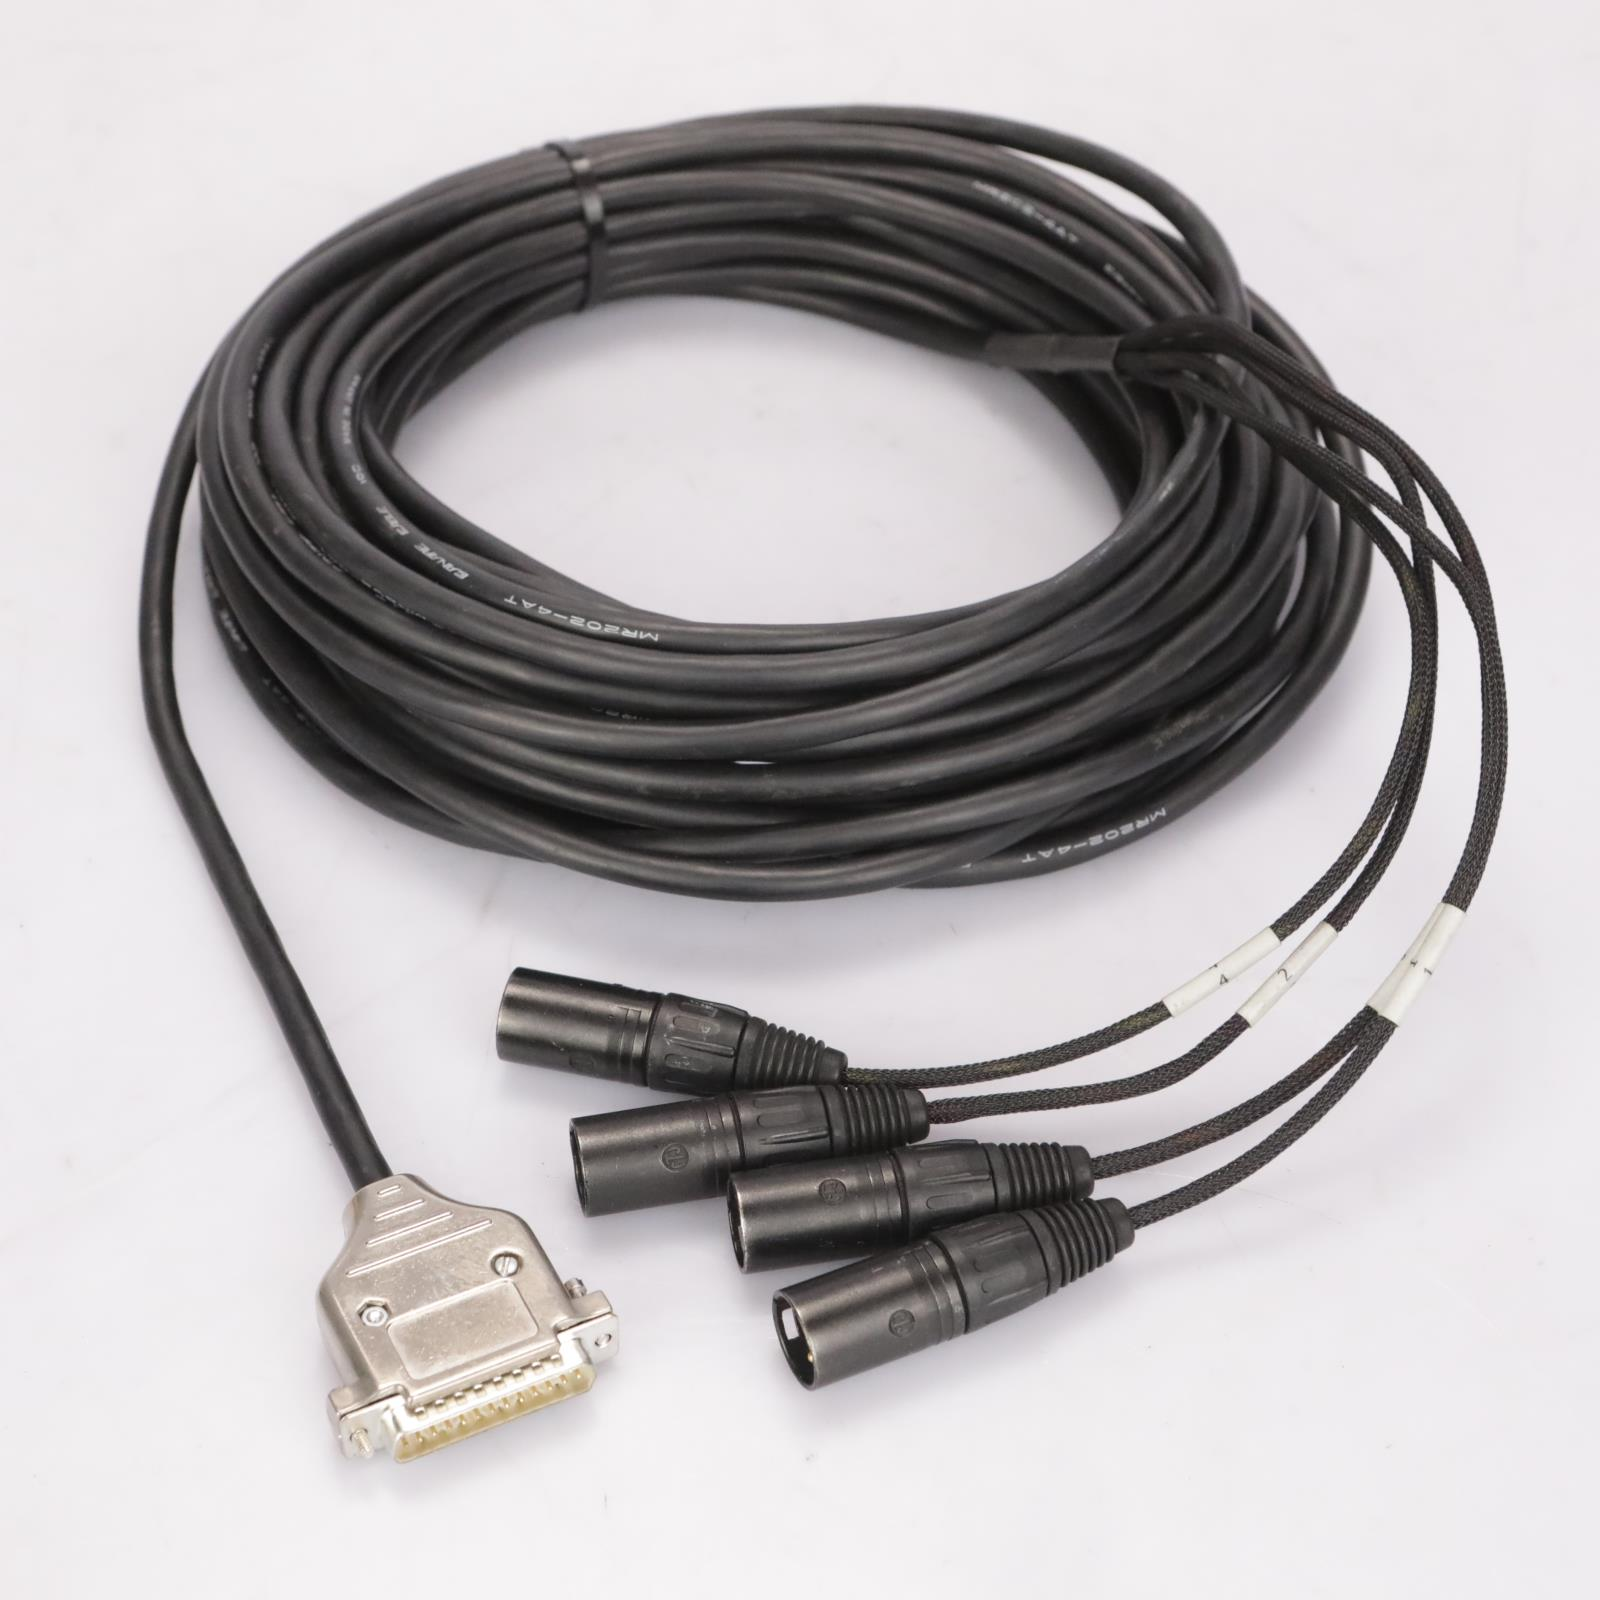 Canare 45' MR202-4AT DB25-XLR Male 8 Channel AES EBU Snake Cable D-Sub #37339